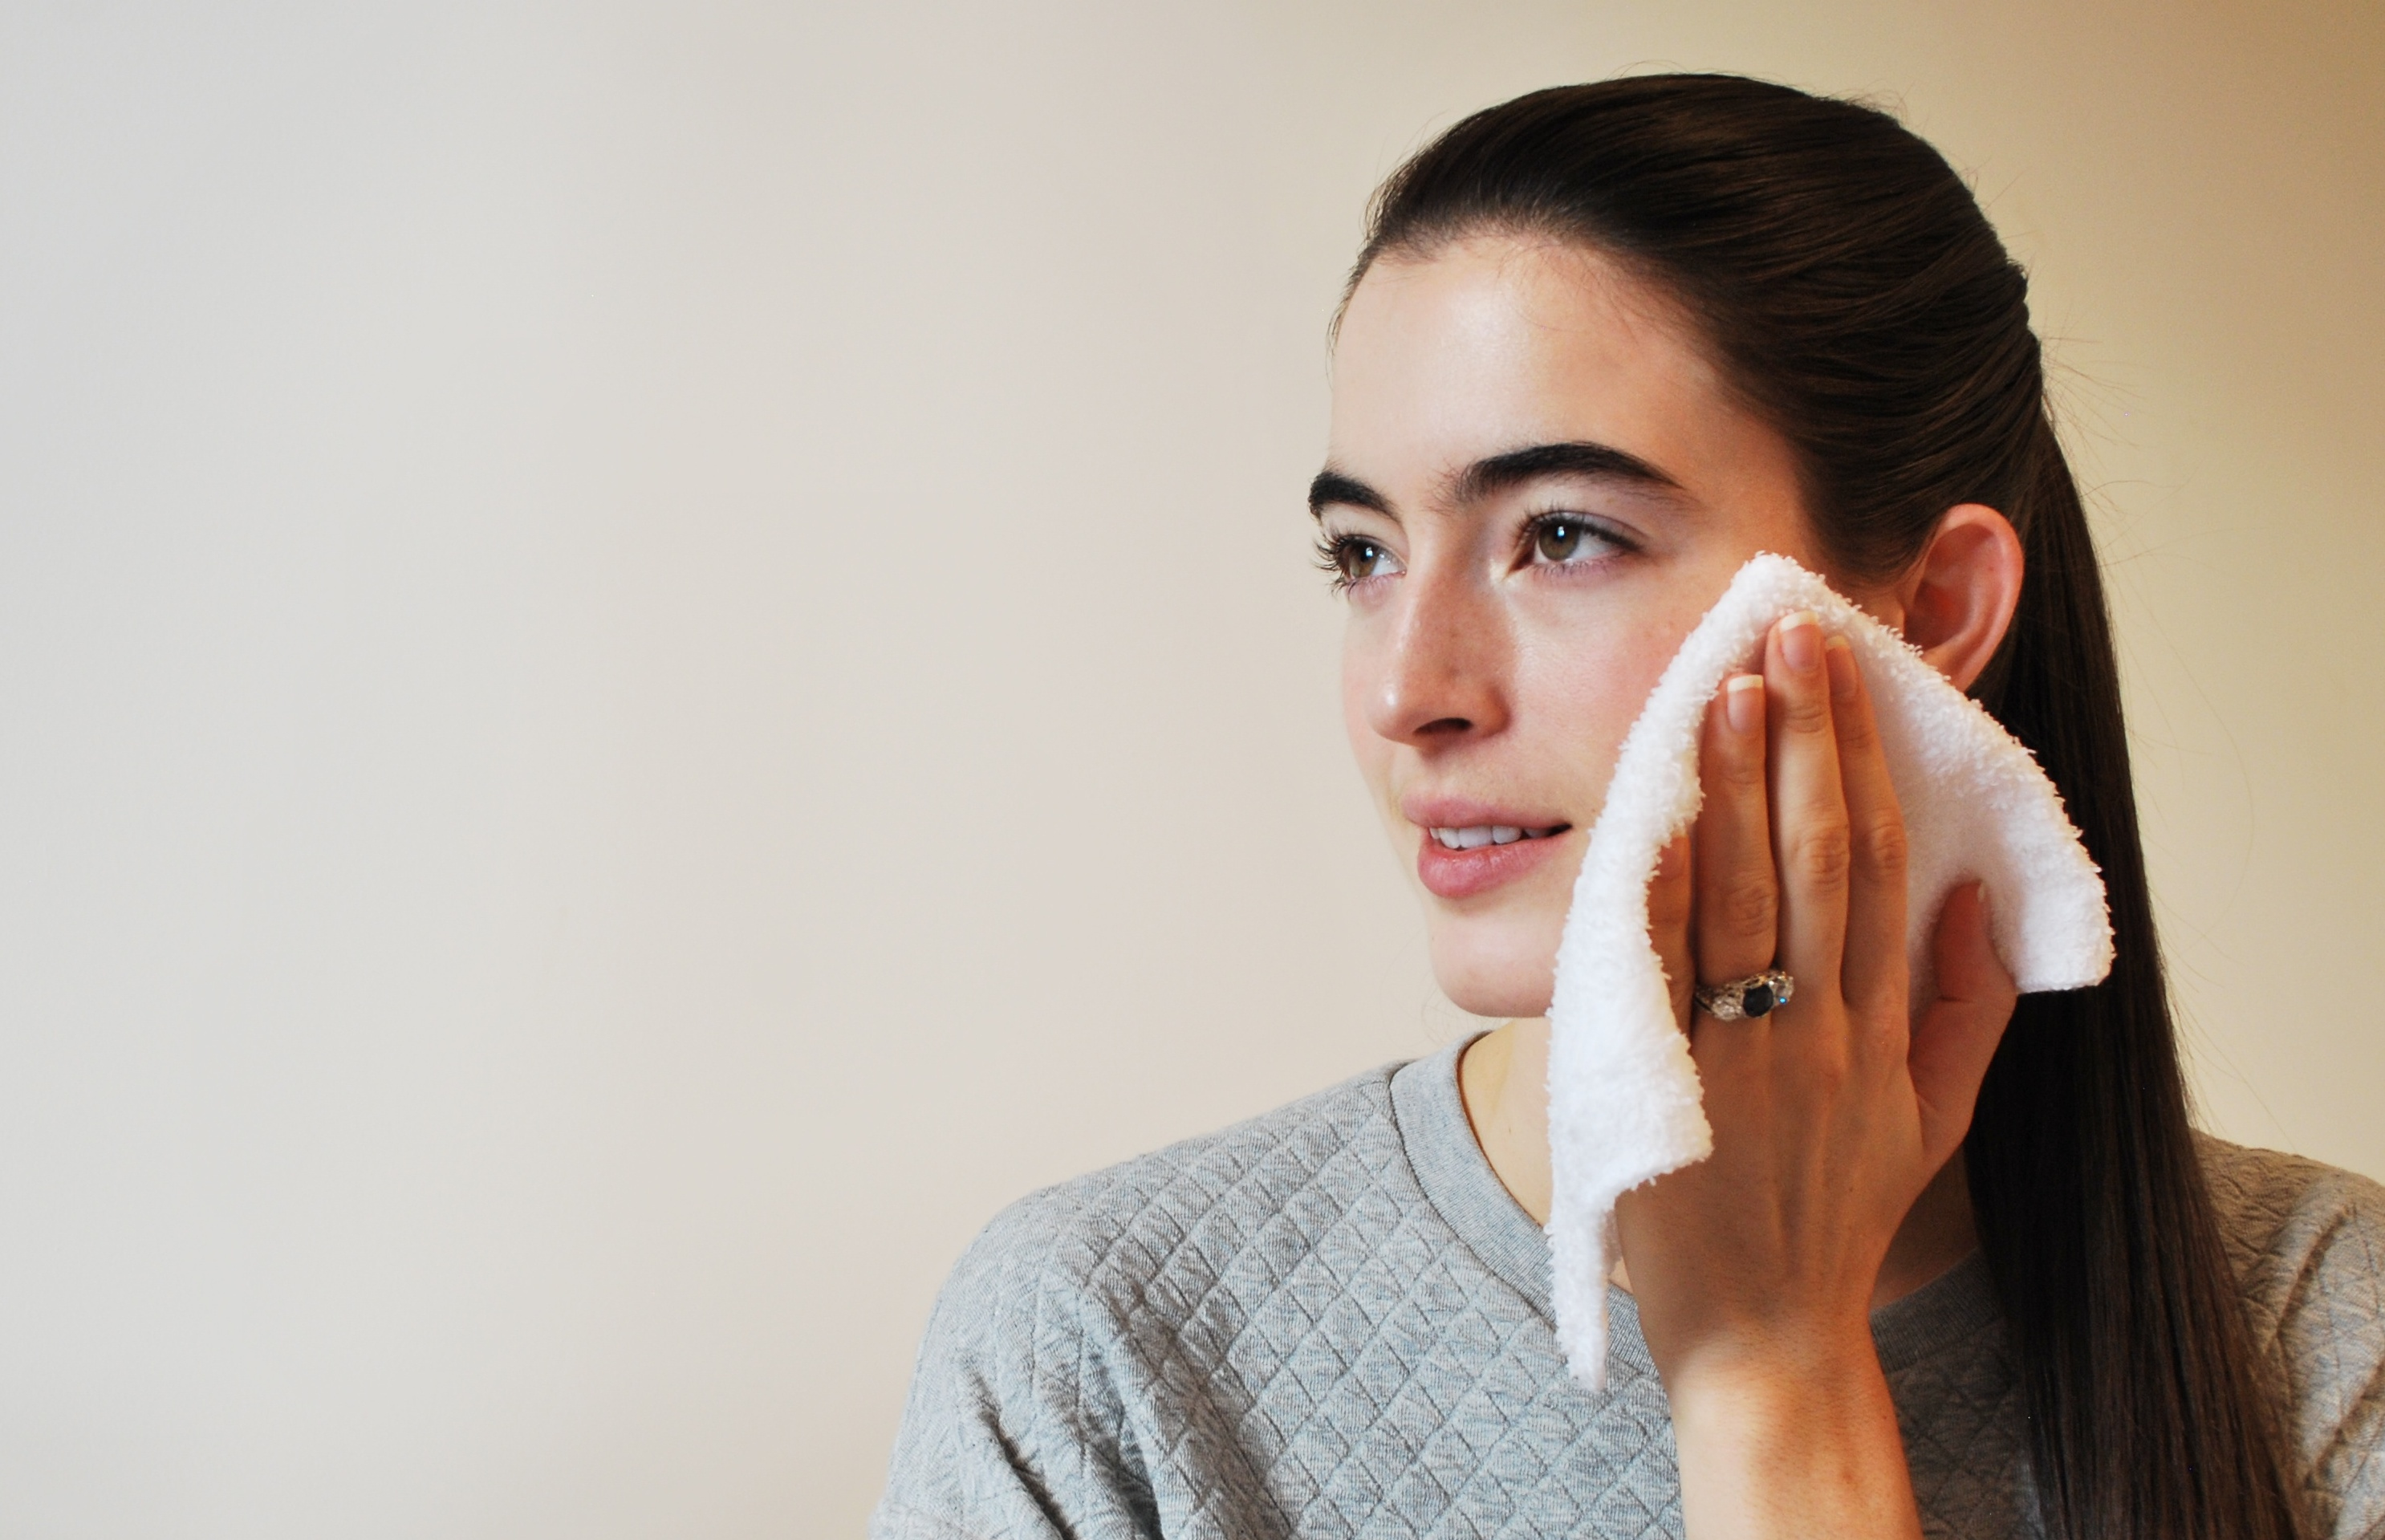 Skin Care 101: Cleansing